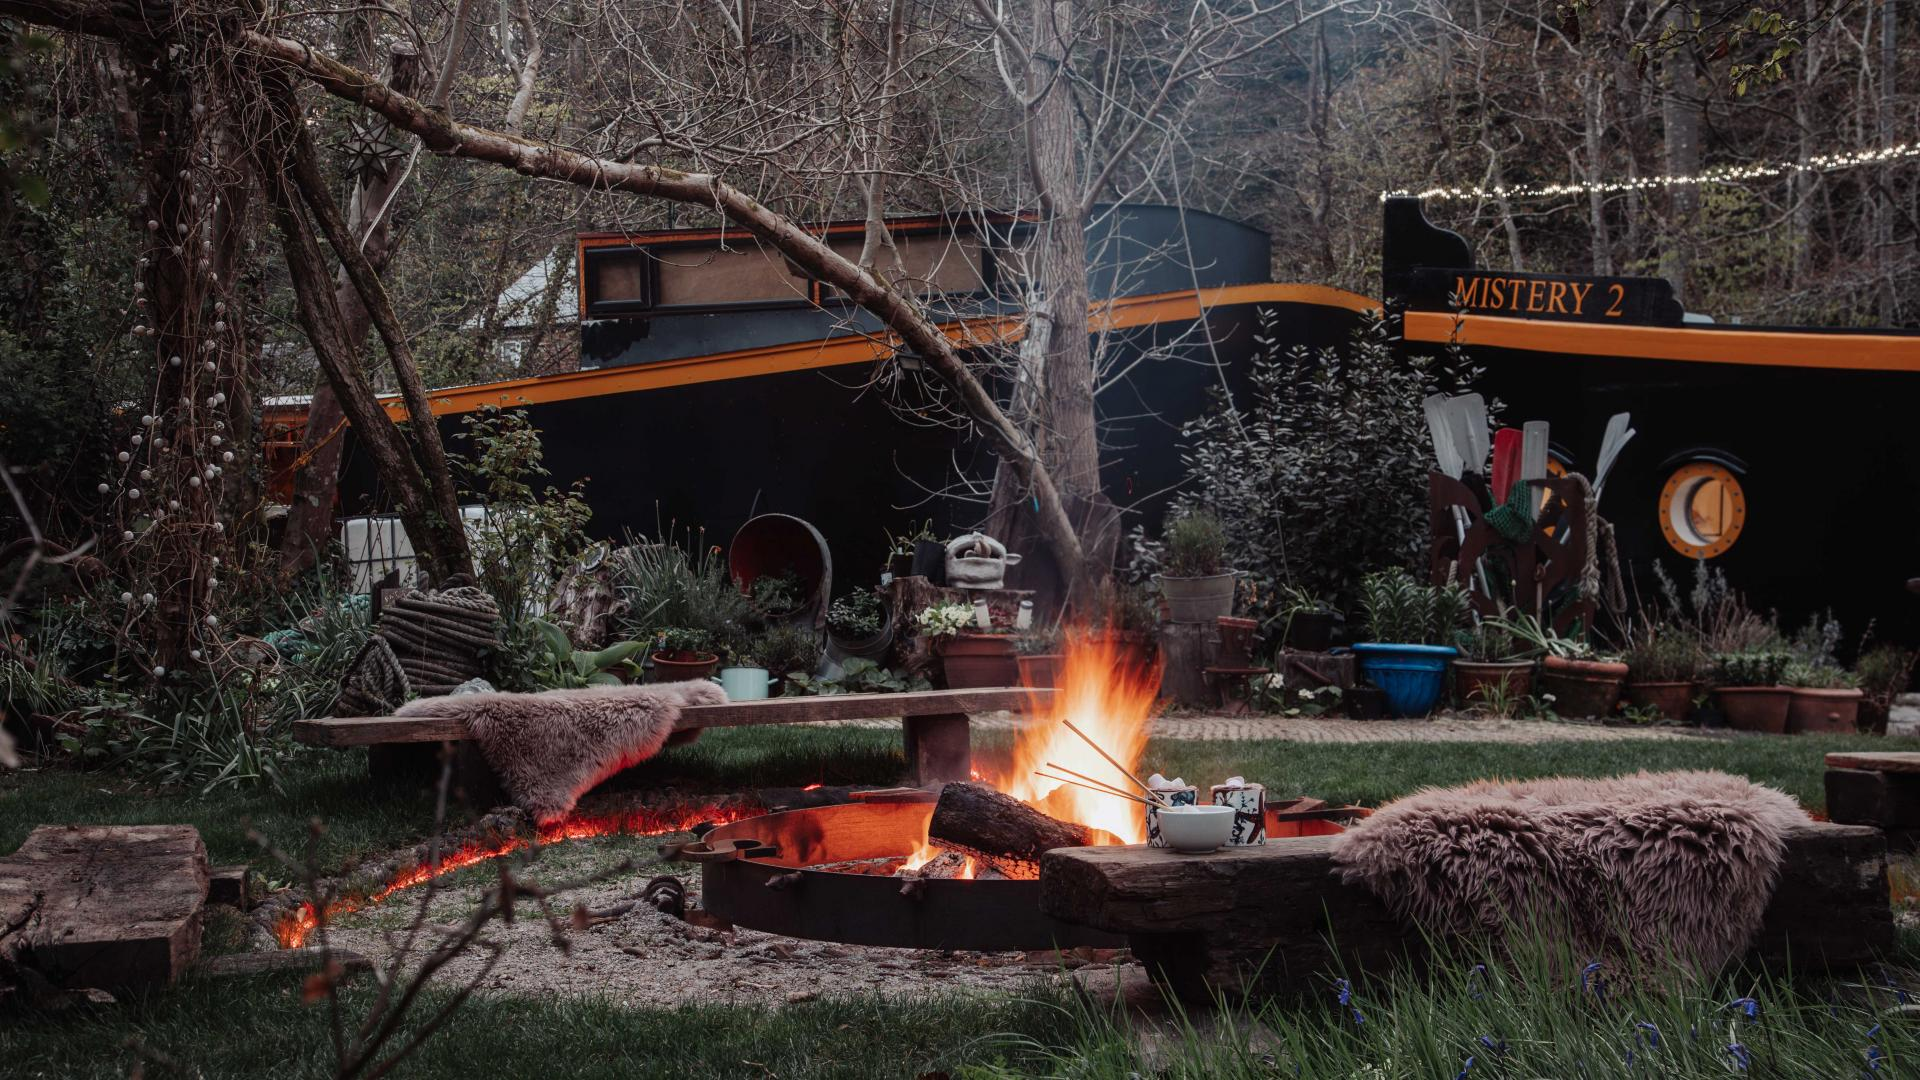 Self-catering accommodation: Cornish barge outdoor fire pit